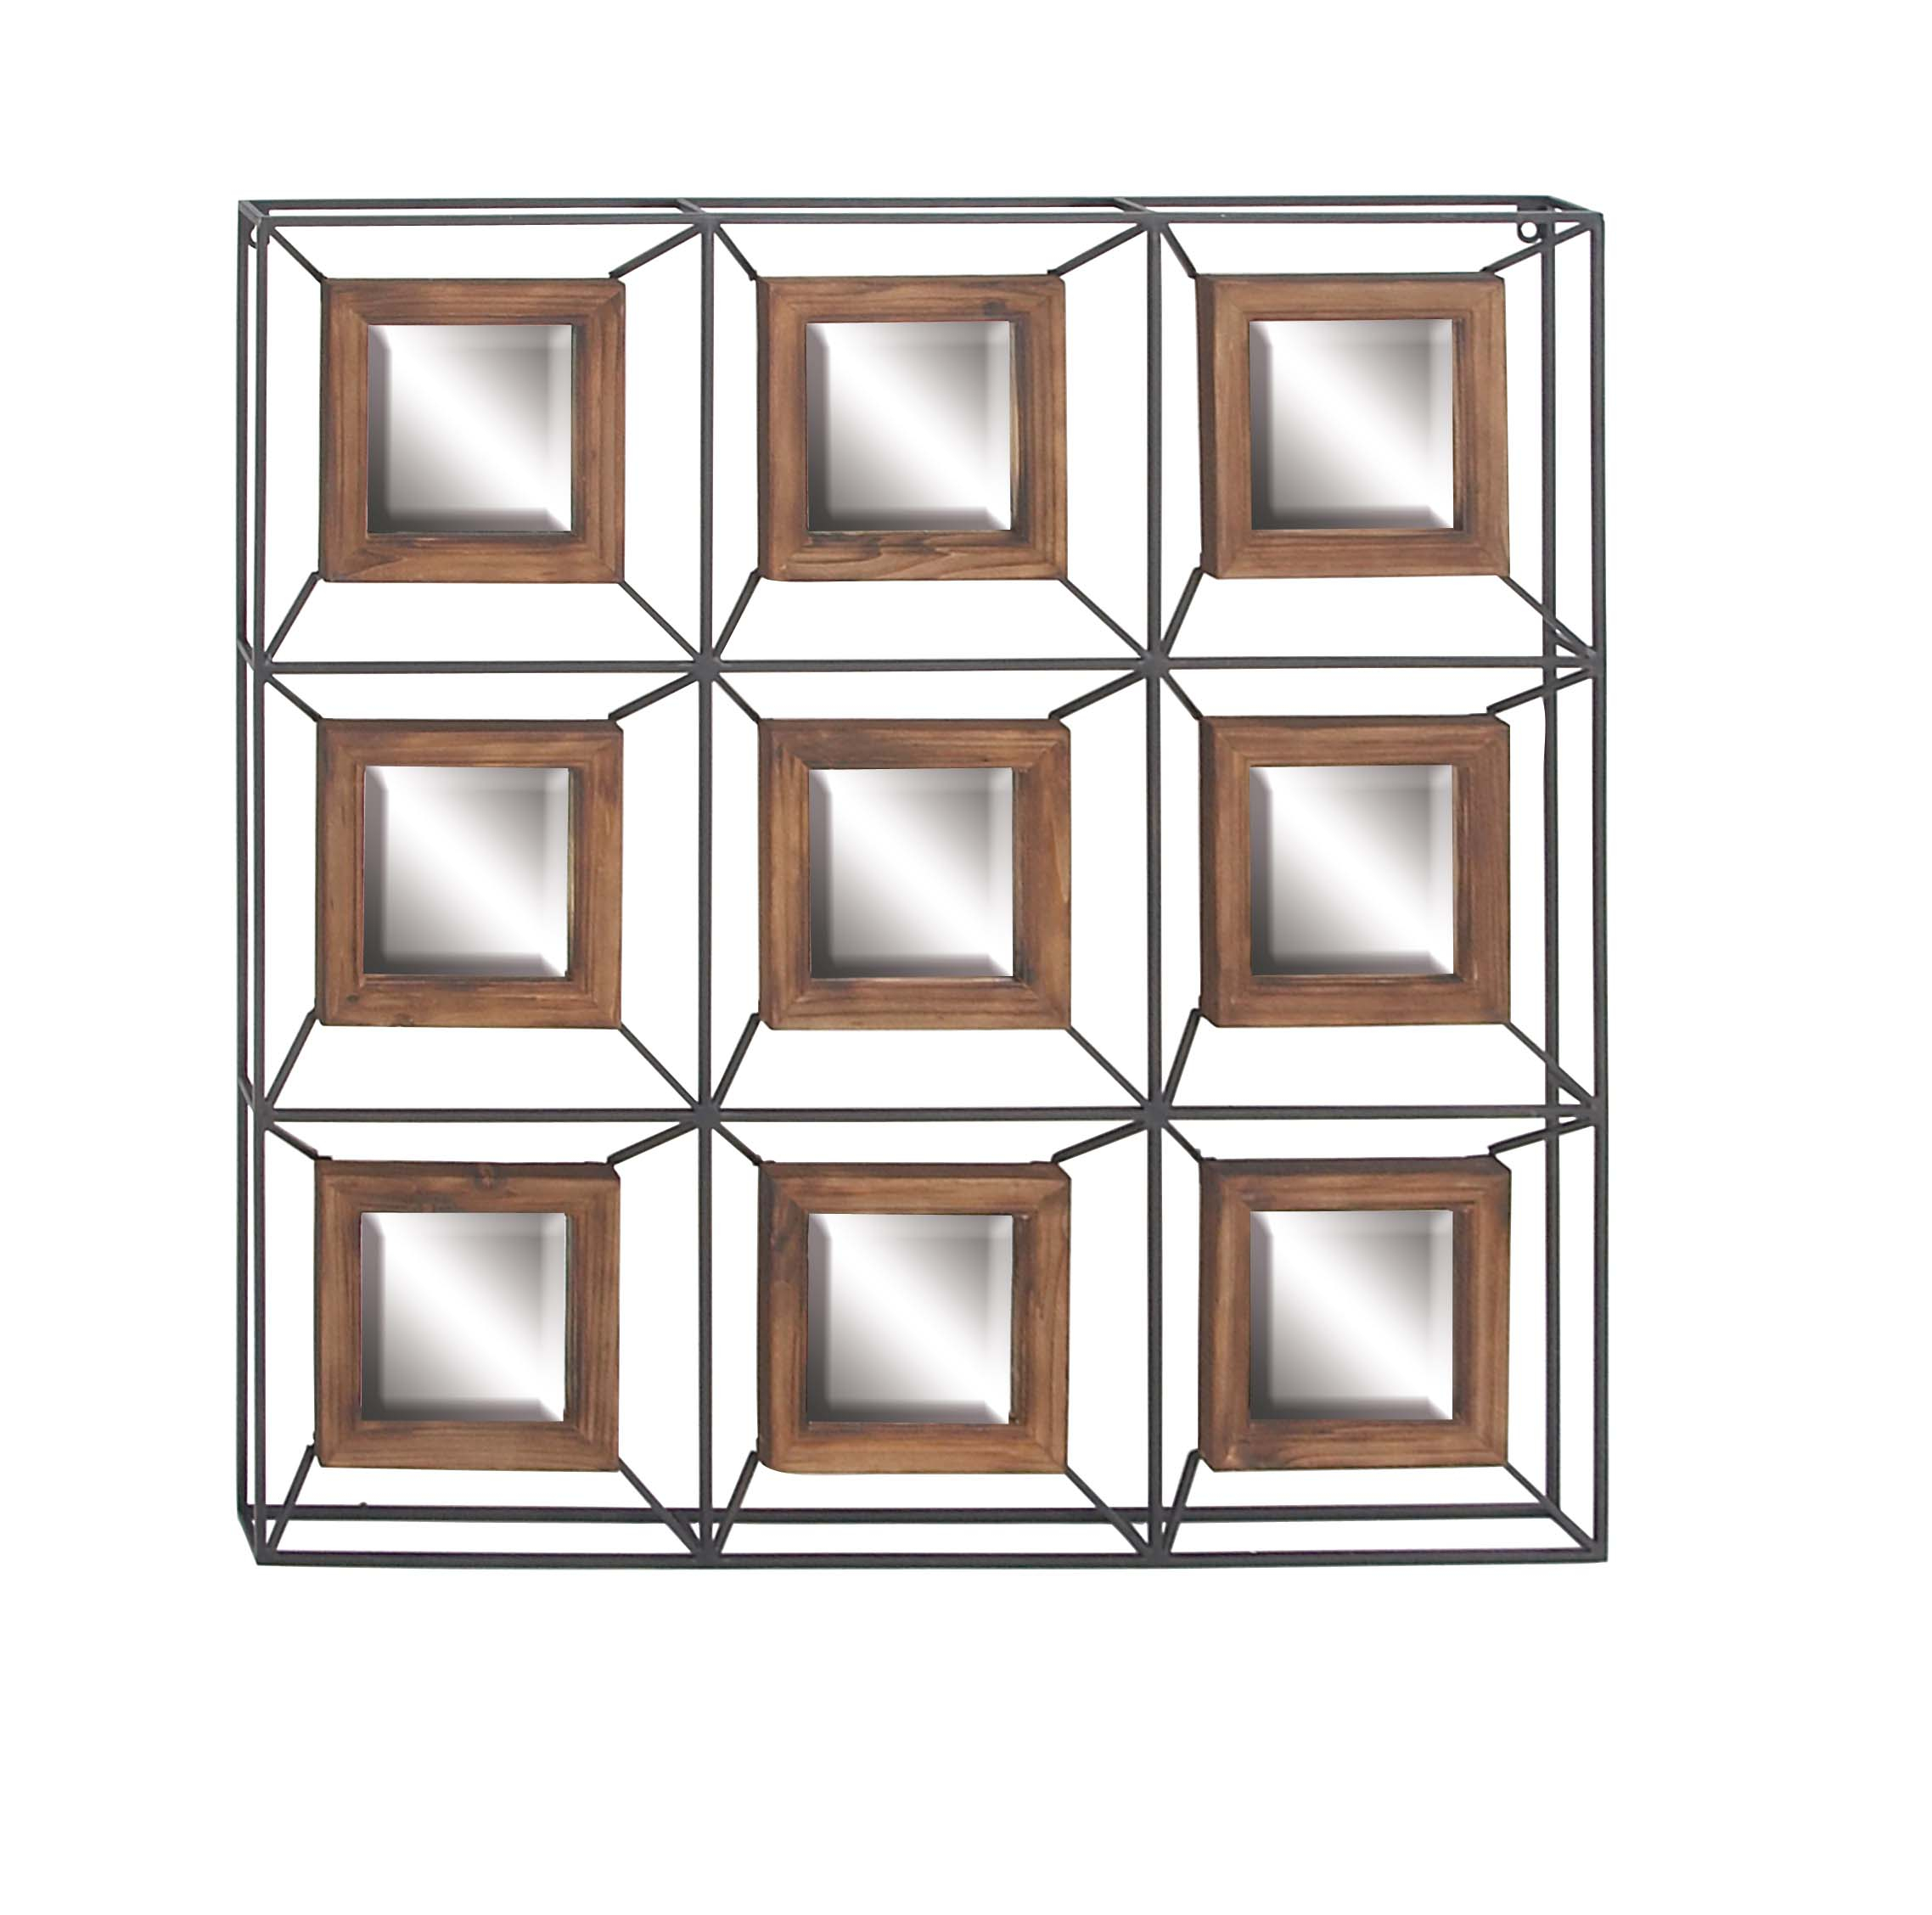 Decmode Contemporary Metal And Fir Wood Grid Wall Mirror, Gray Regarding Traditional Square Glass Wall Mirrors (Image 2 of 20)